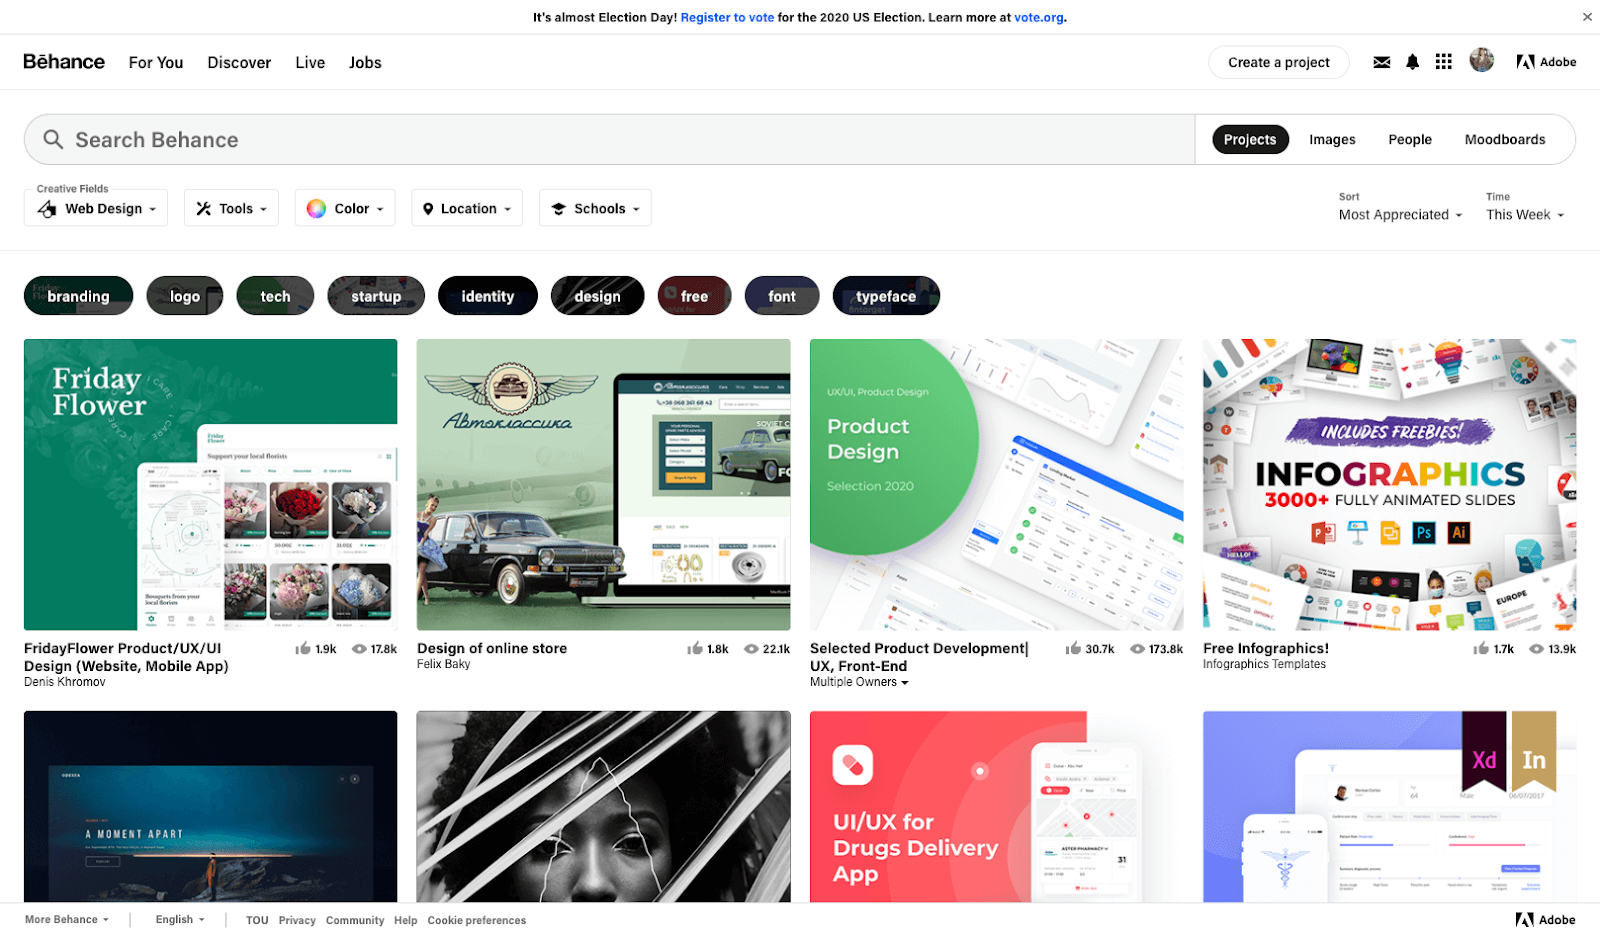 Screenshot of Behance homepage